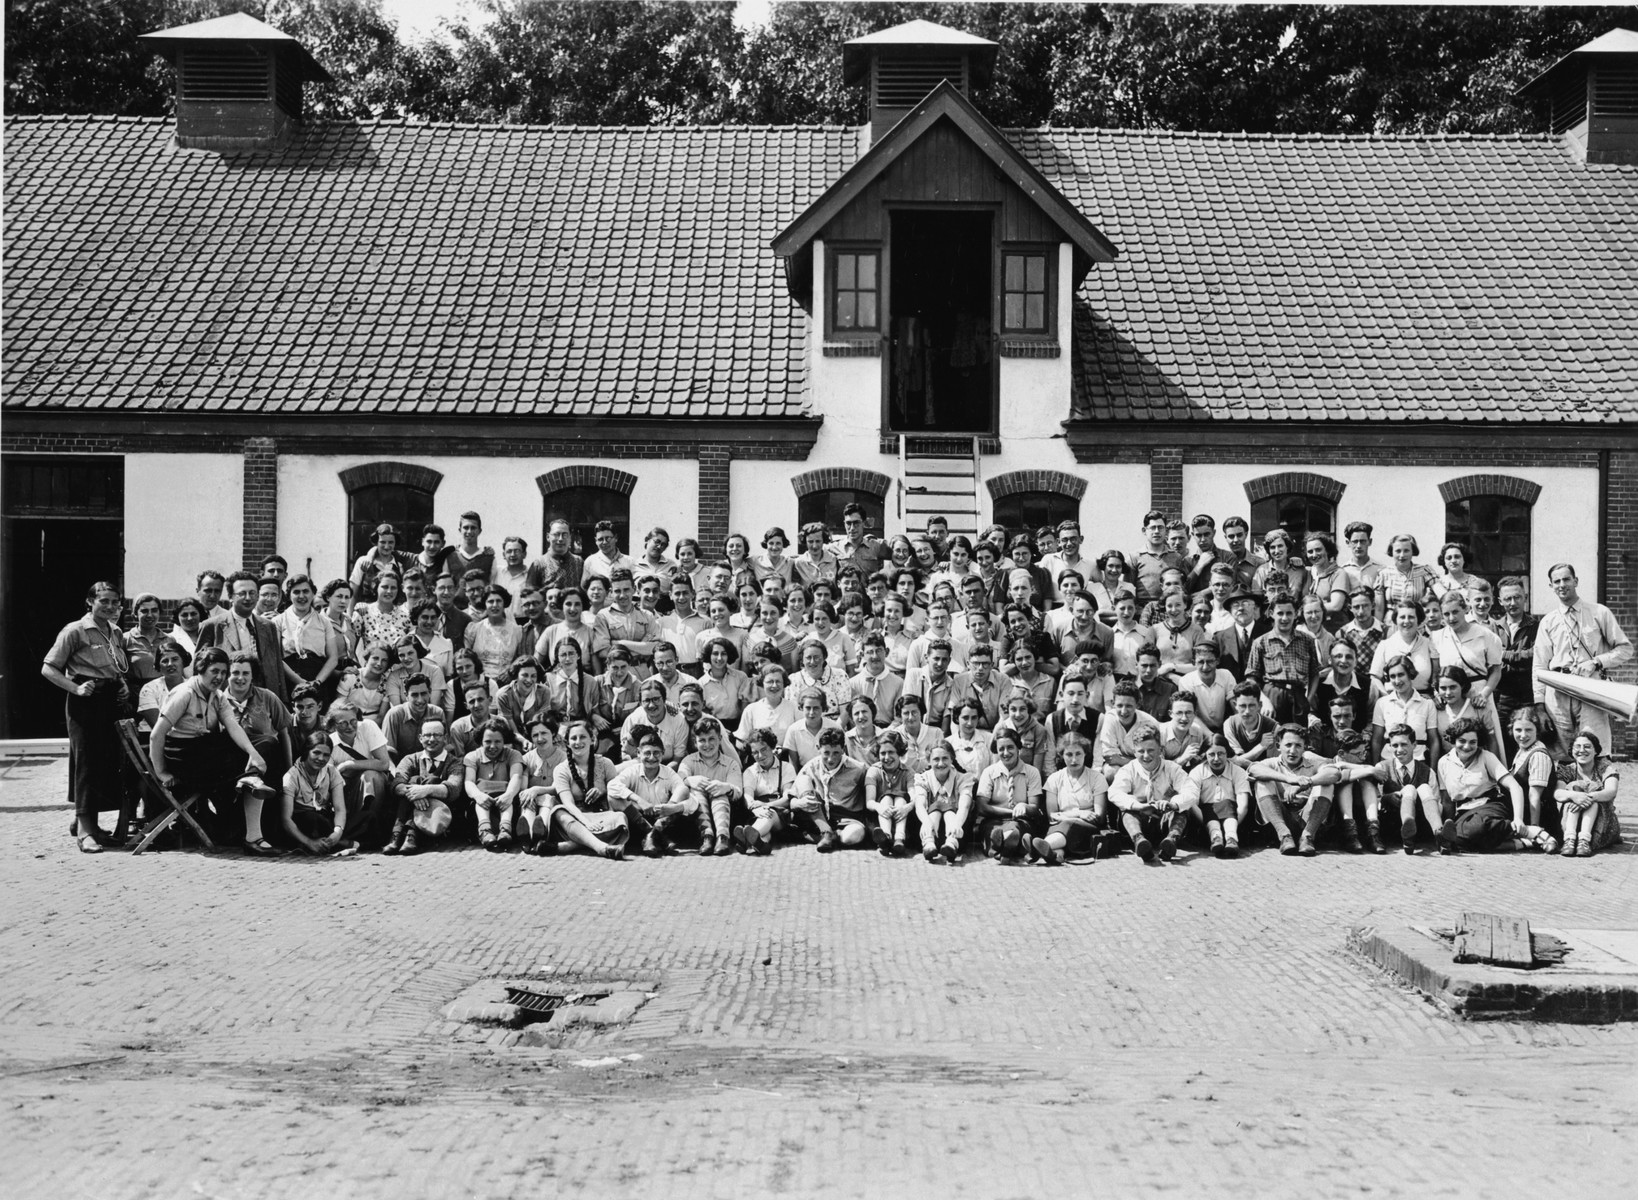 Group portrait of students in a Jewish school in Oosterbeek.  Among those pictured is a young teacher, Letty Rudelsheim.